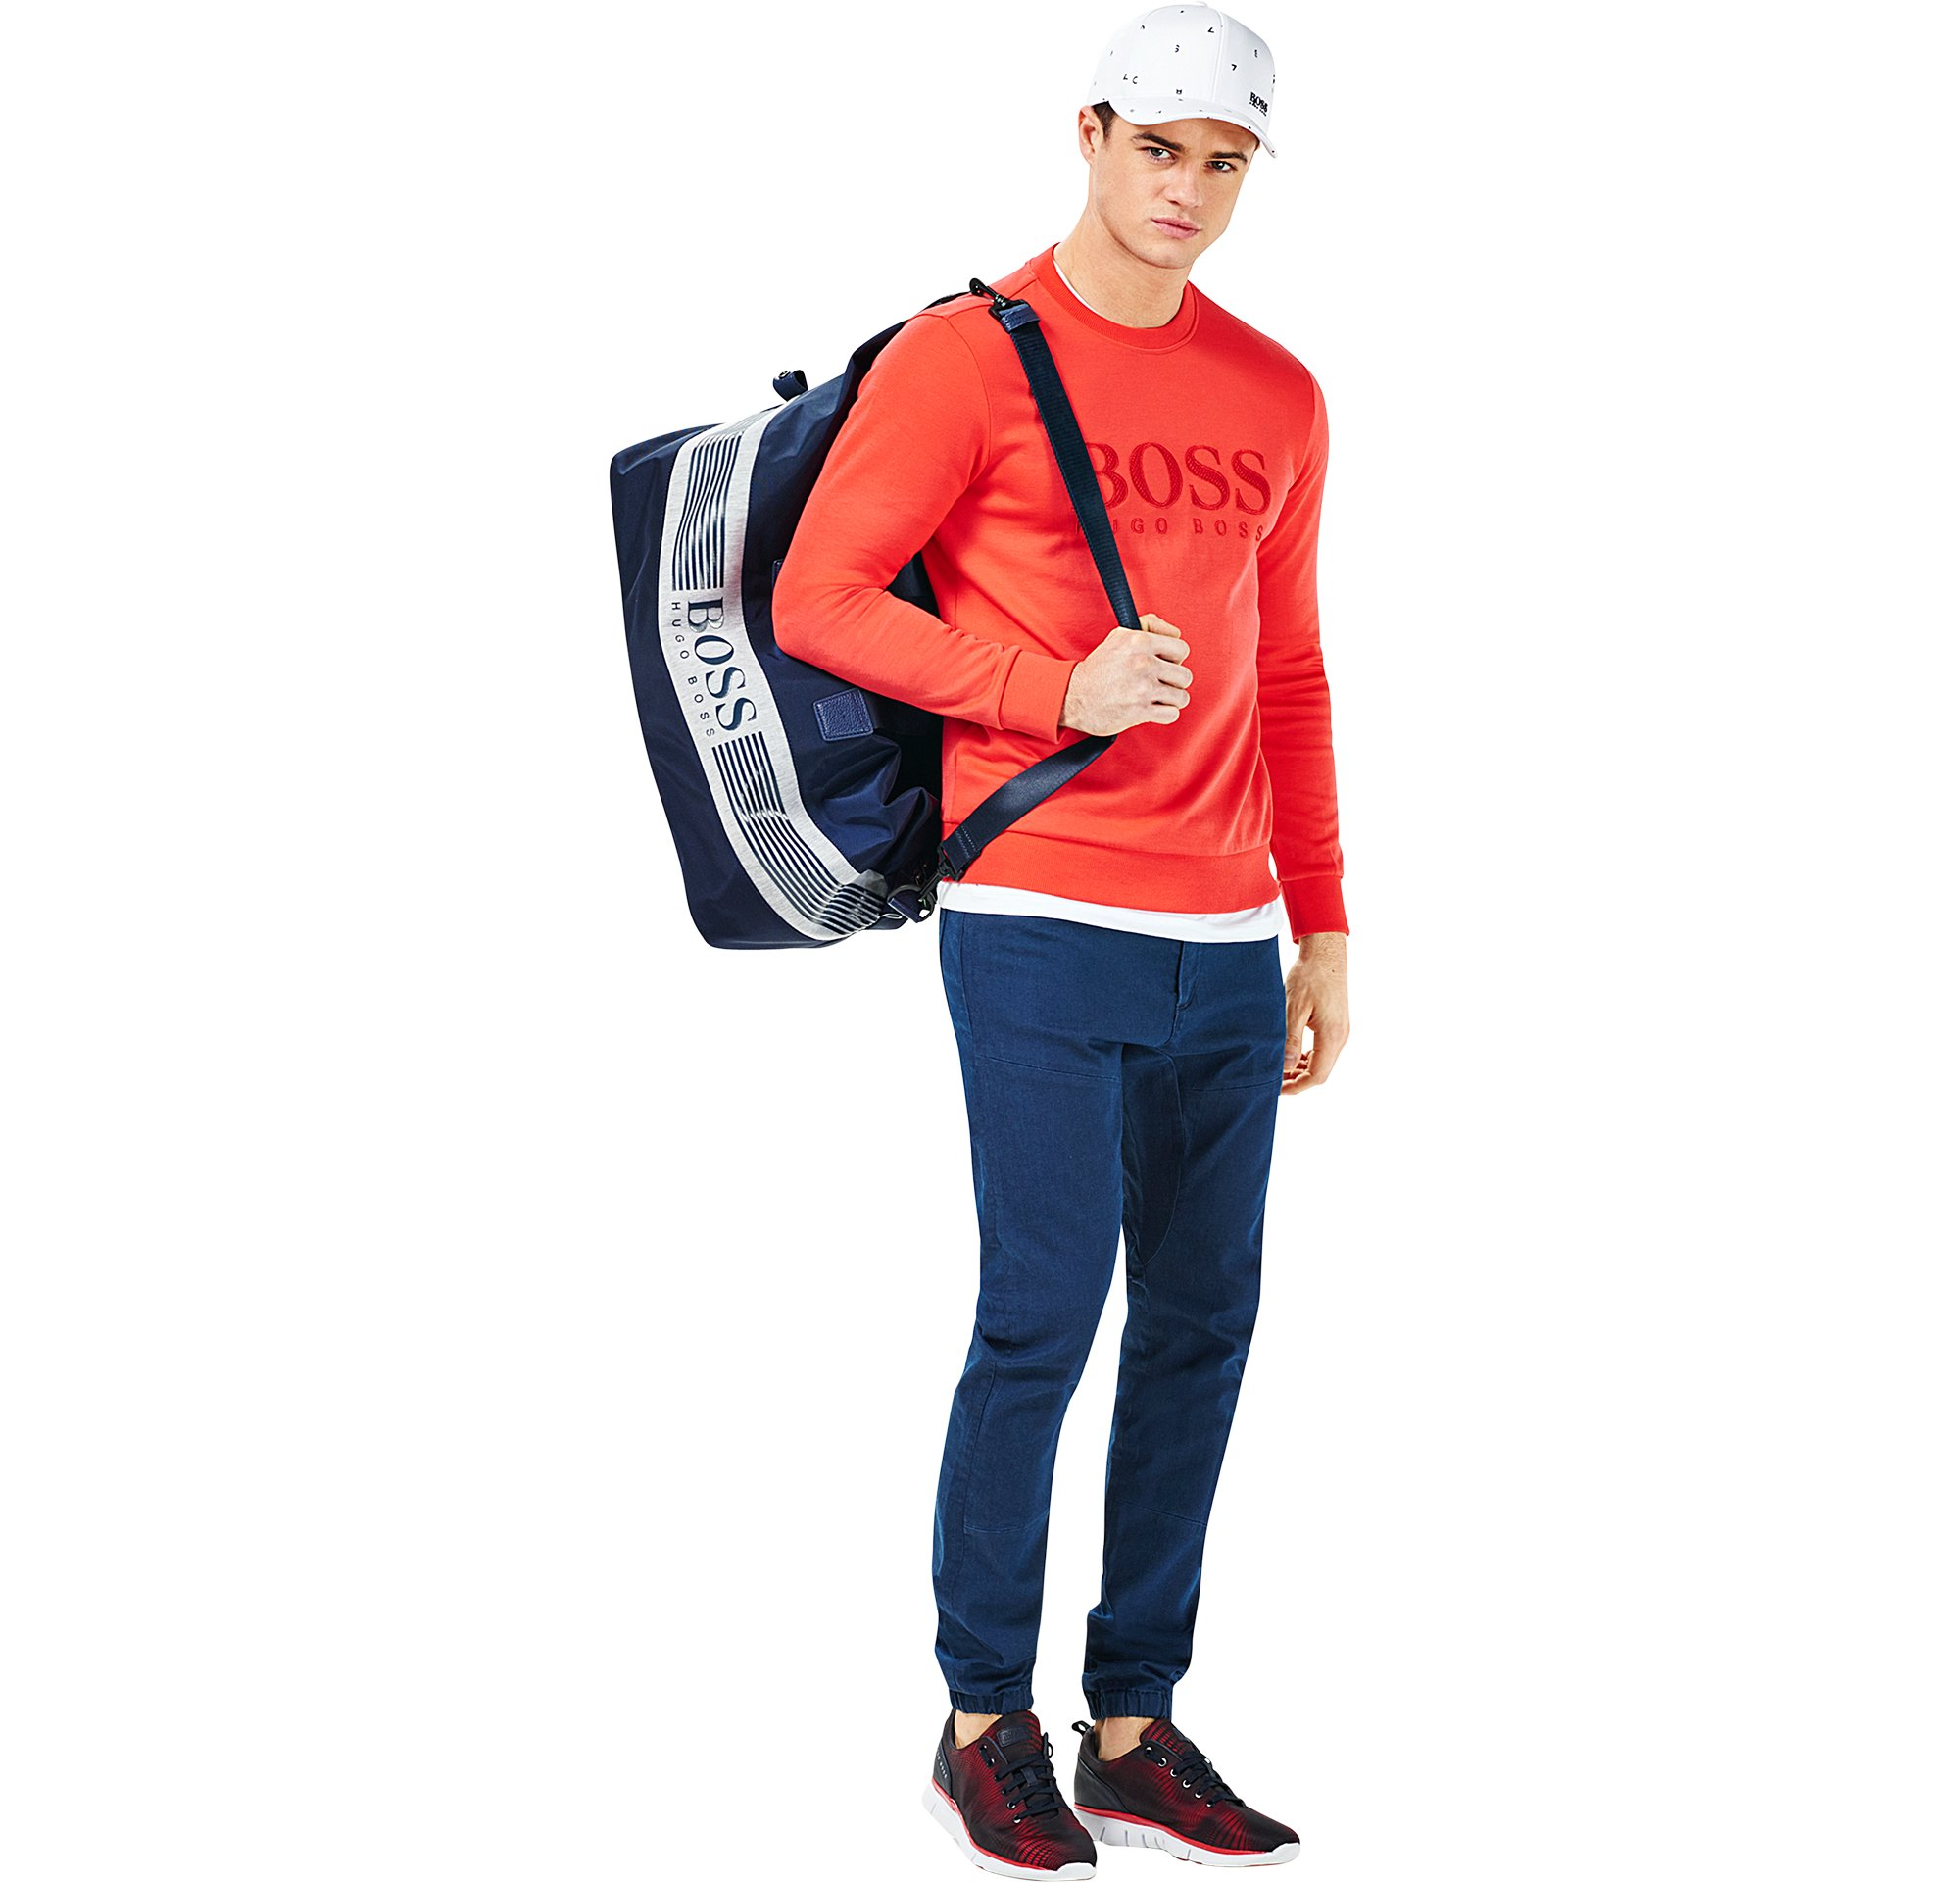 Jersey, jeans, shoes, cap and bag by BOSS Green Menswear